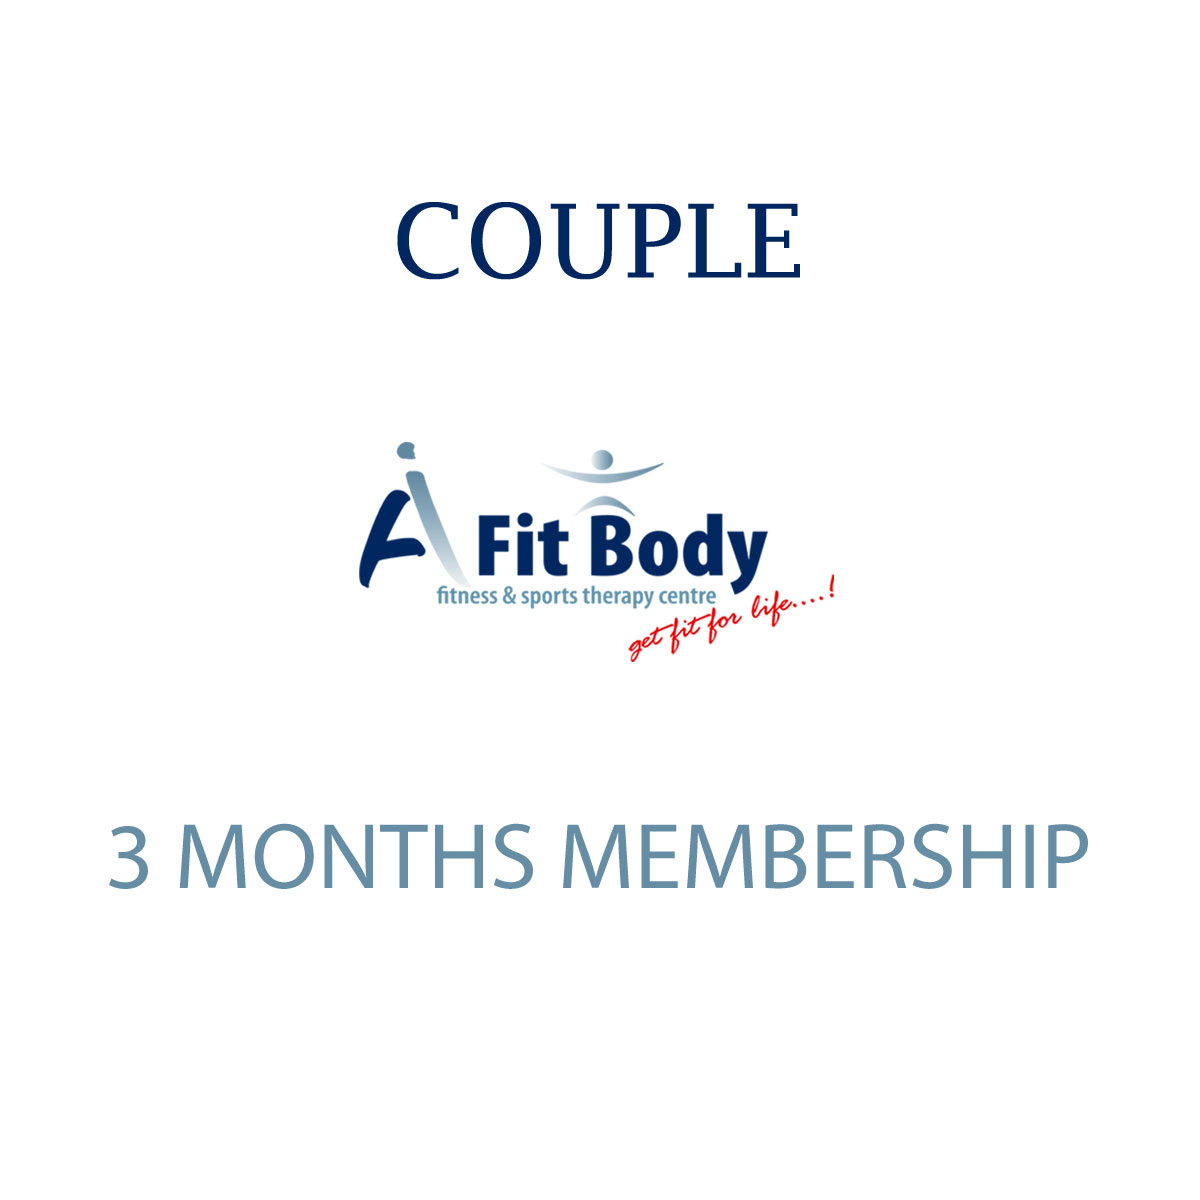 Couple - 3 Months Membership